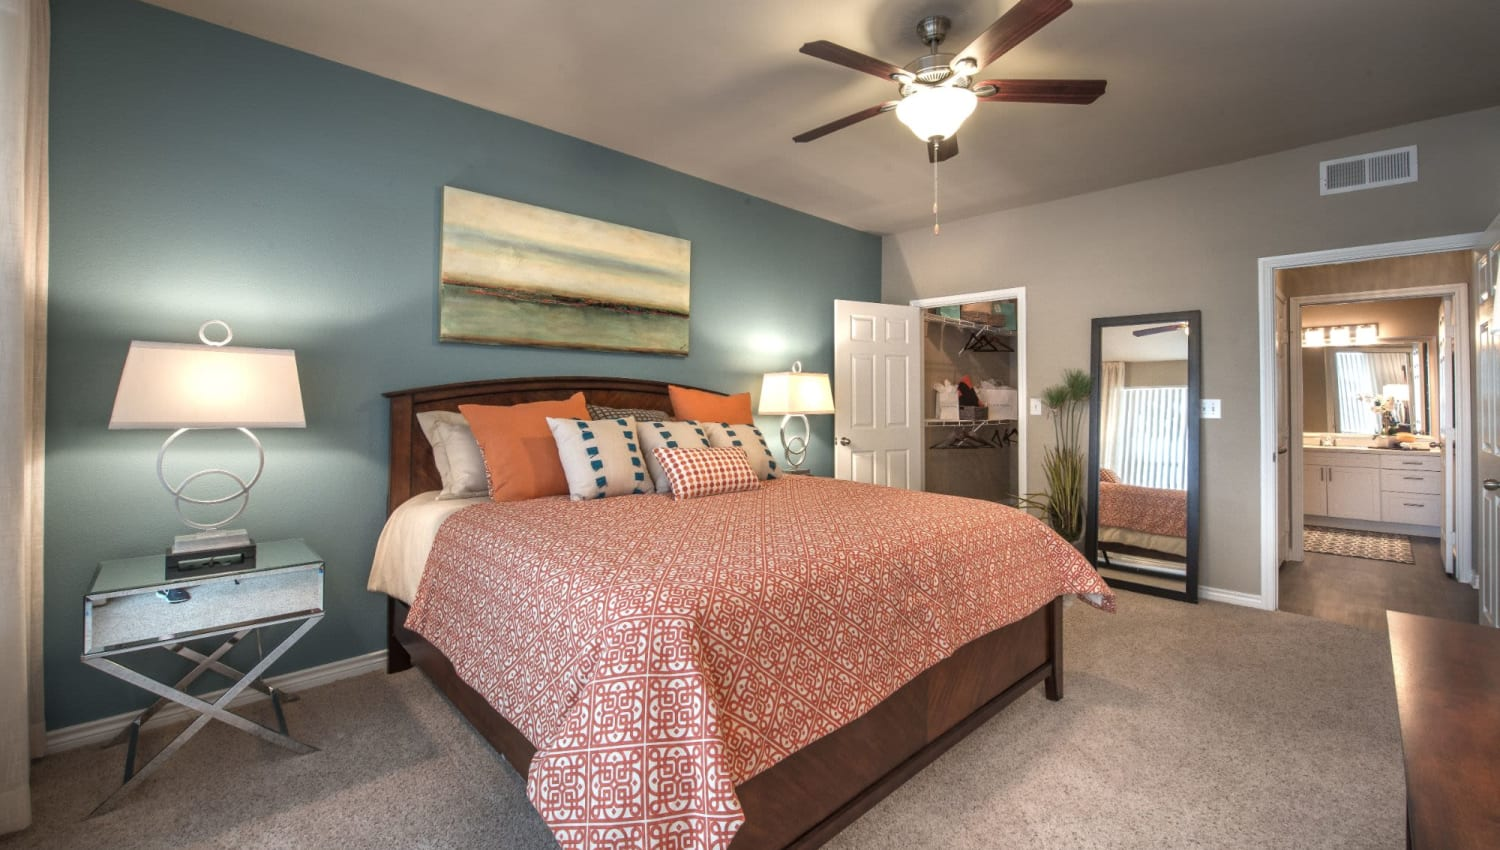 Great interior finishes in bedroom at Olympus 7th Street Station in Fort Worth, Texas